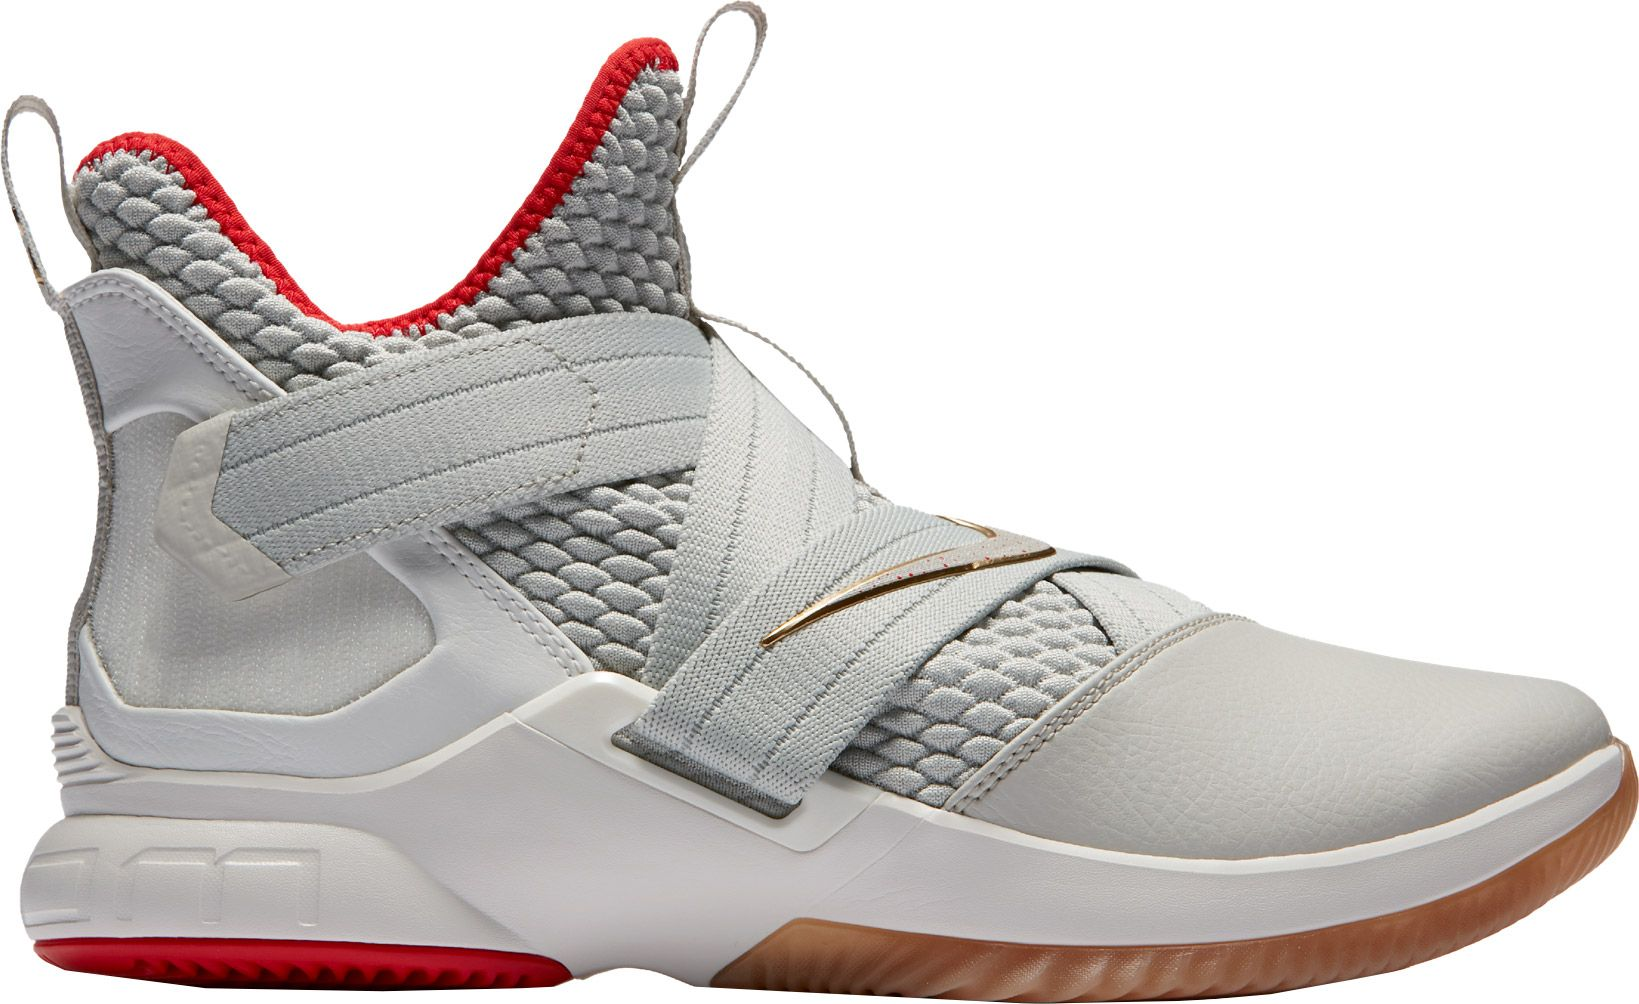 9376fff877ba Nike Zoom LeBron Soldier XII Basketball Shoes